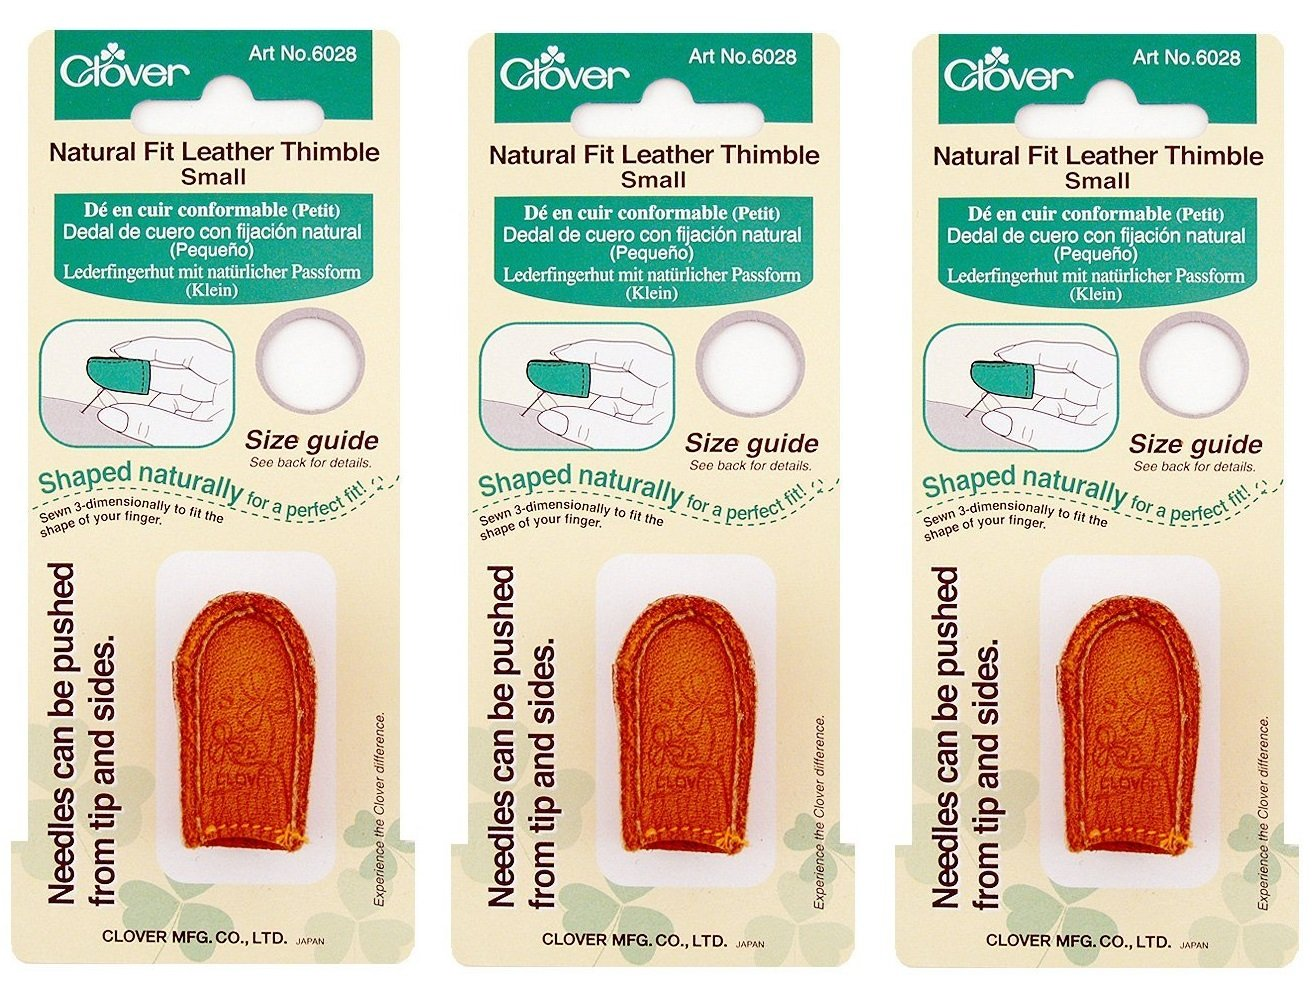 Clover Natural Fit Leather Thimble, Small (3 Pack) by Clover